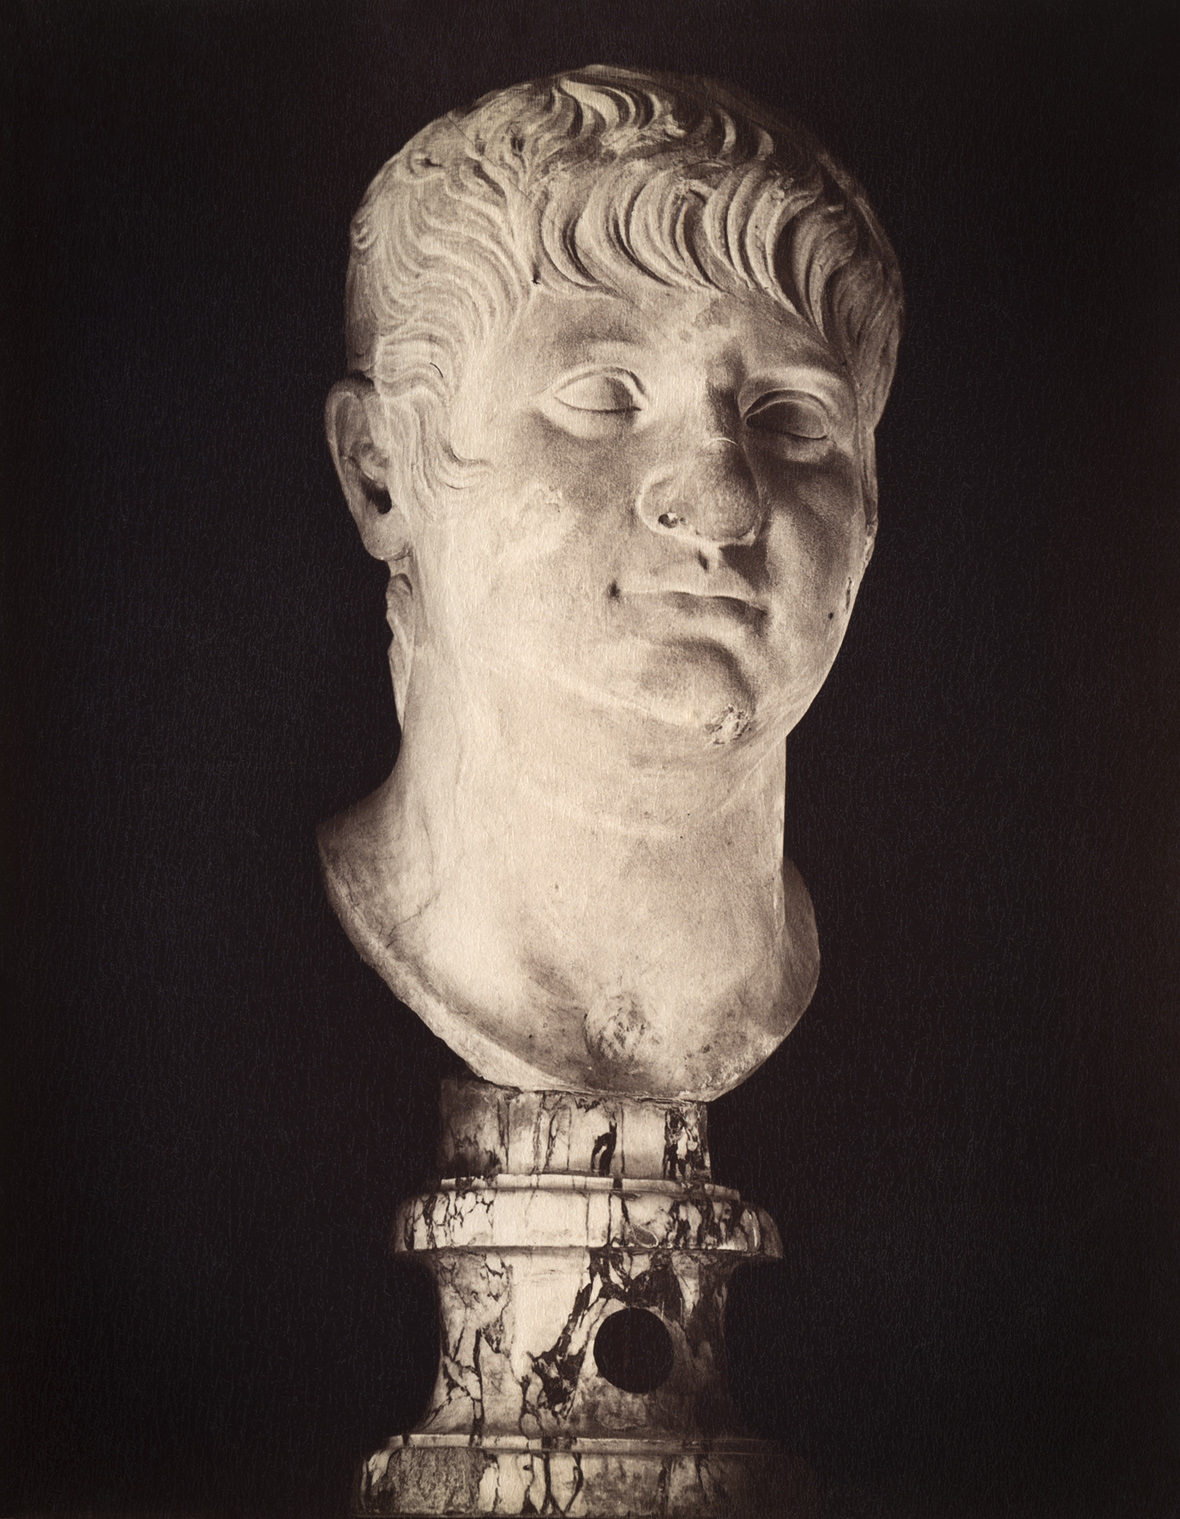 Nero in the mature age. Marble. Rome, Capitoline Museums, Palazzo Nuovo, Hall of the Emperors